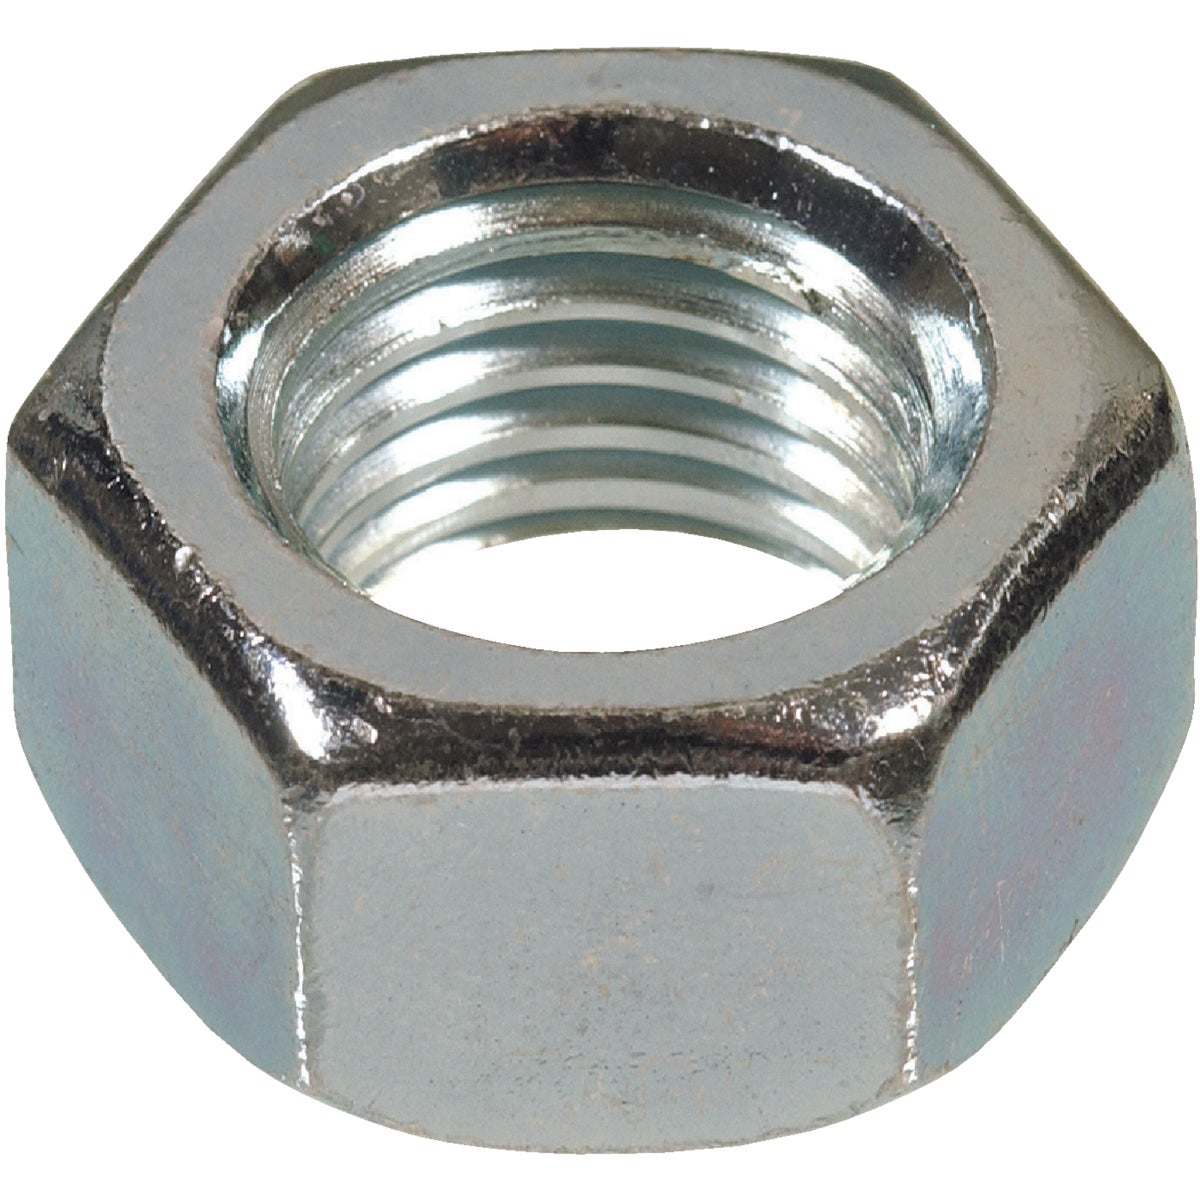 7/8-9 C THREAD HEX NUT - 150027 by Hillman Fastener